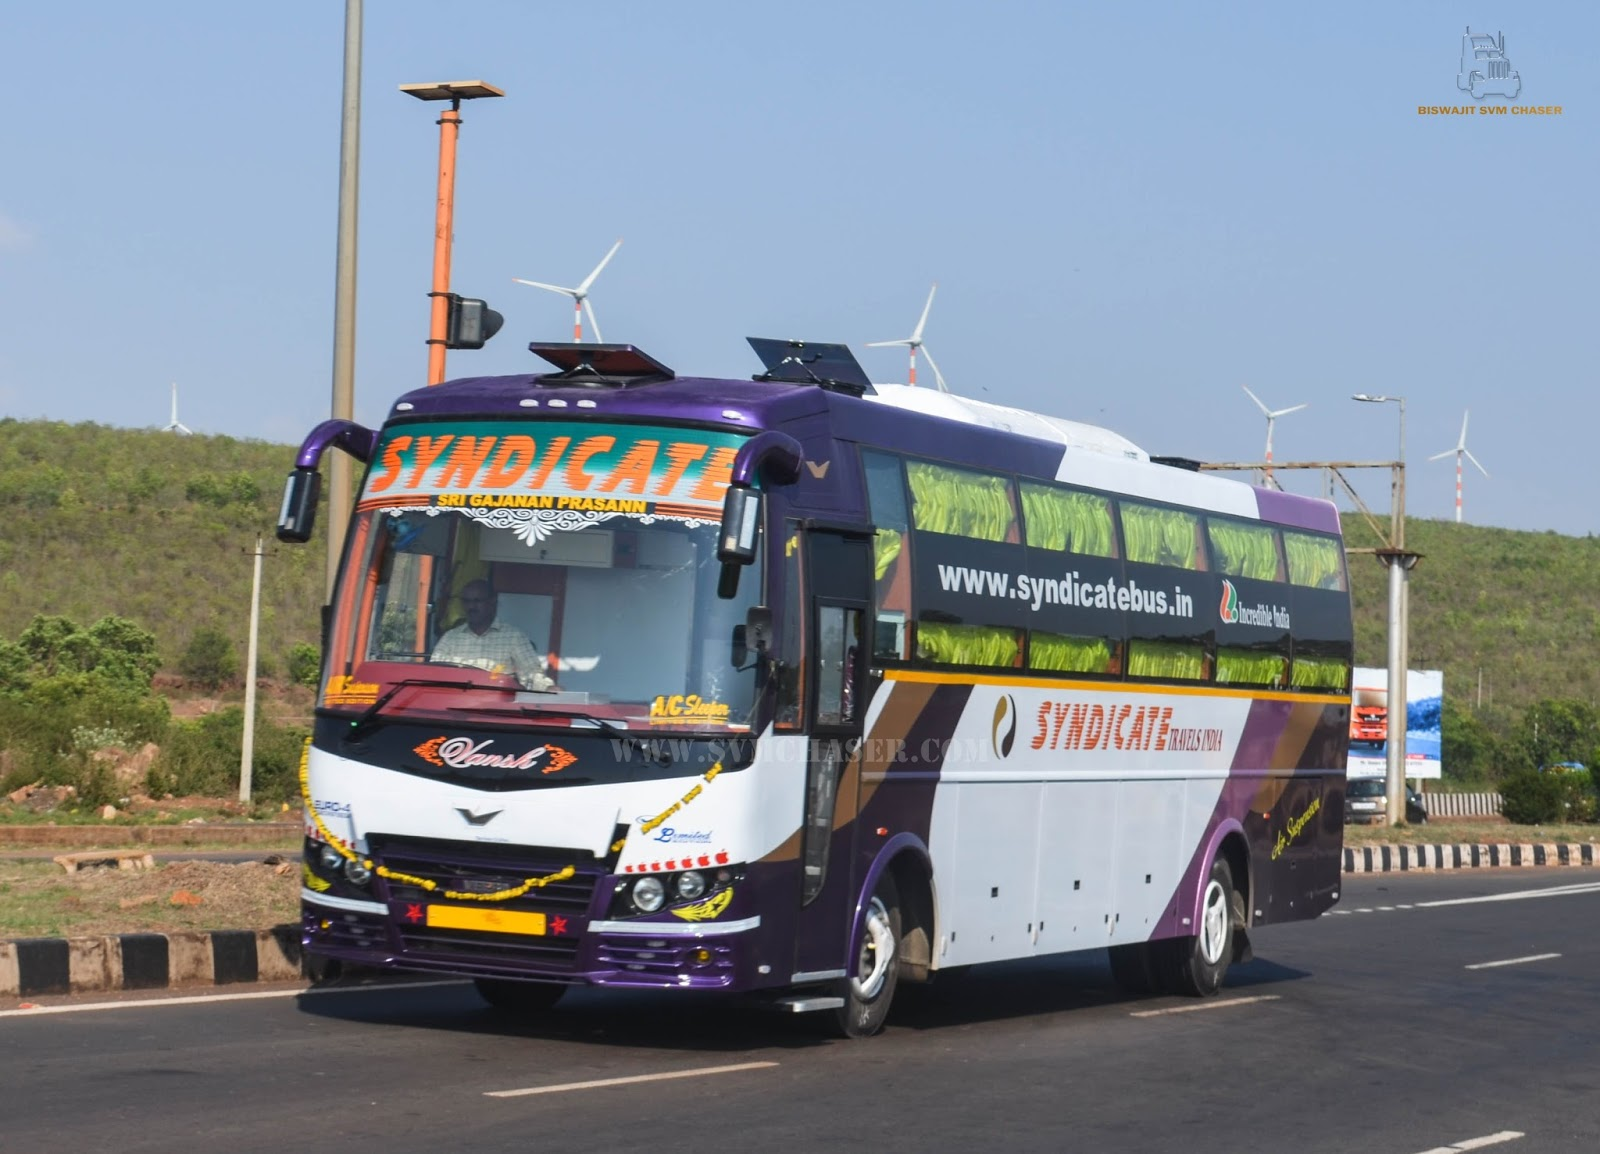 Syndicate Travels Al Ac Sleeper Biswajit Svm Chaser